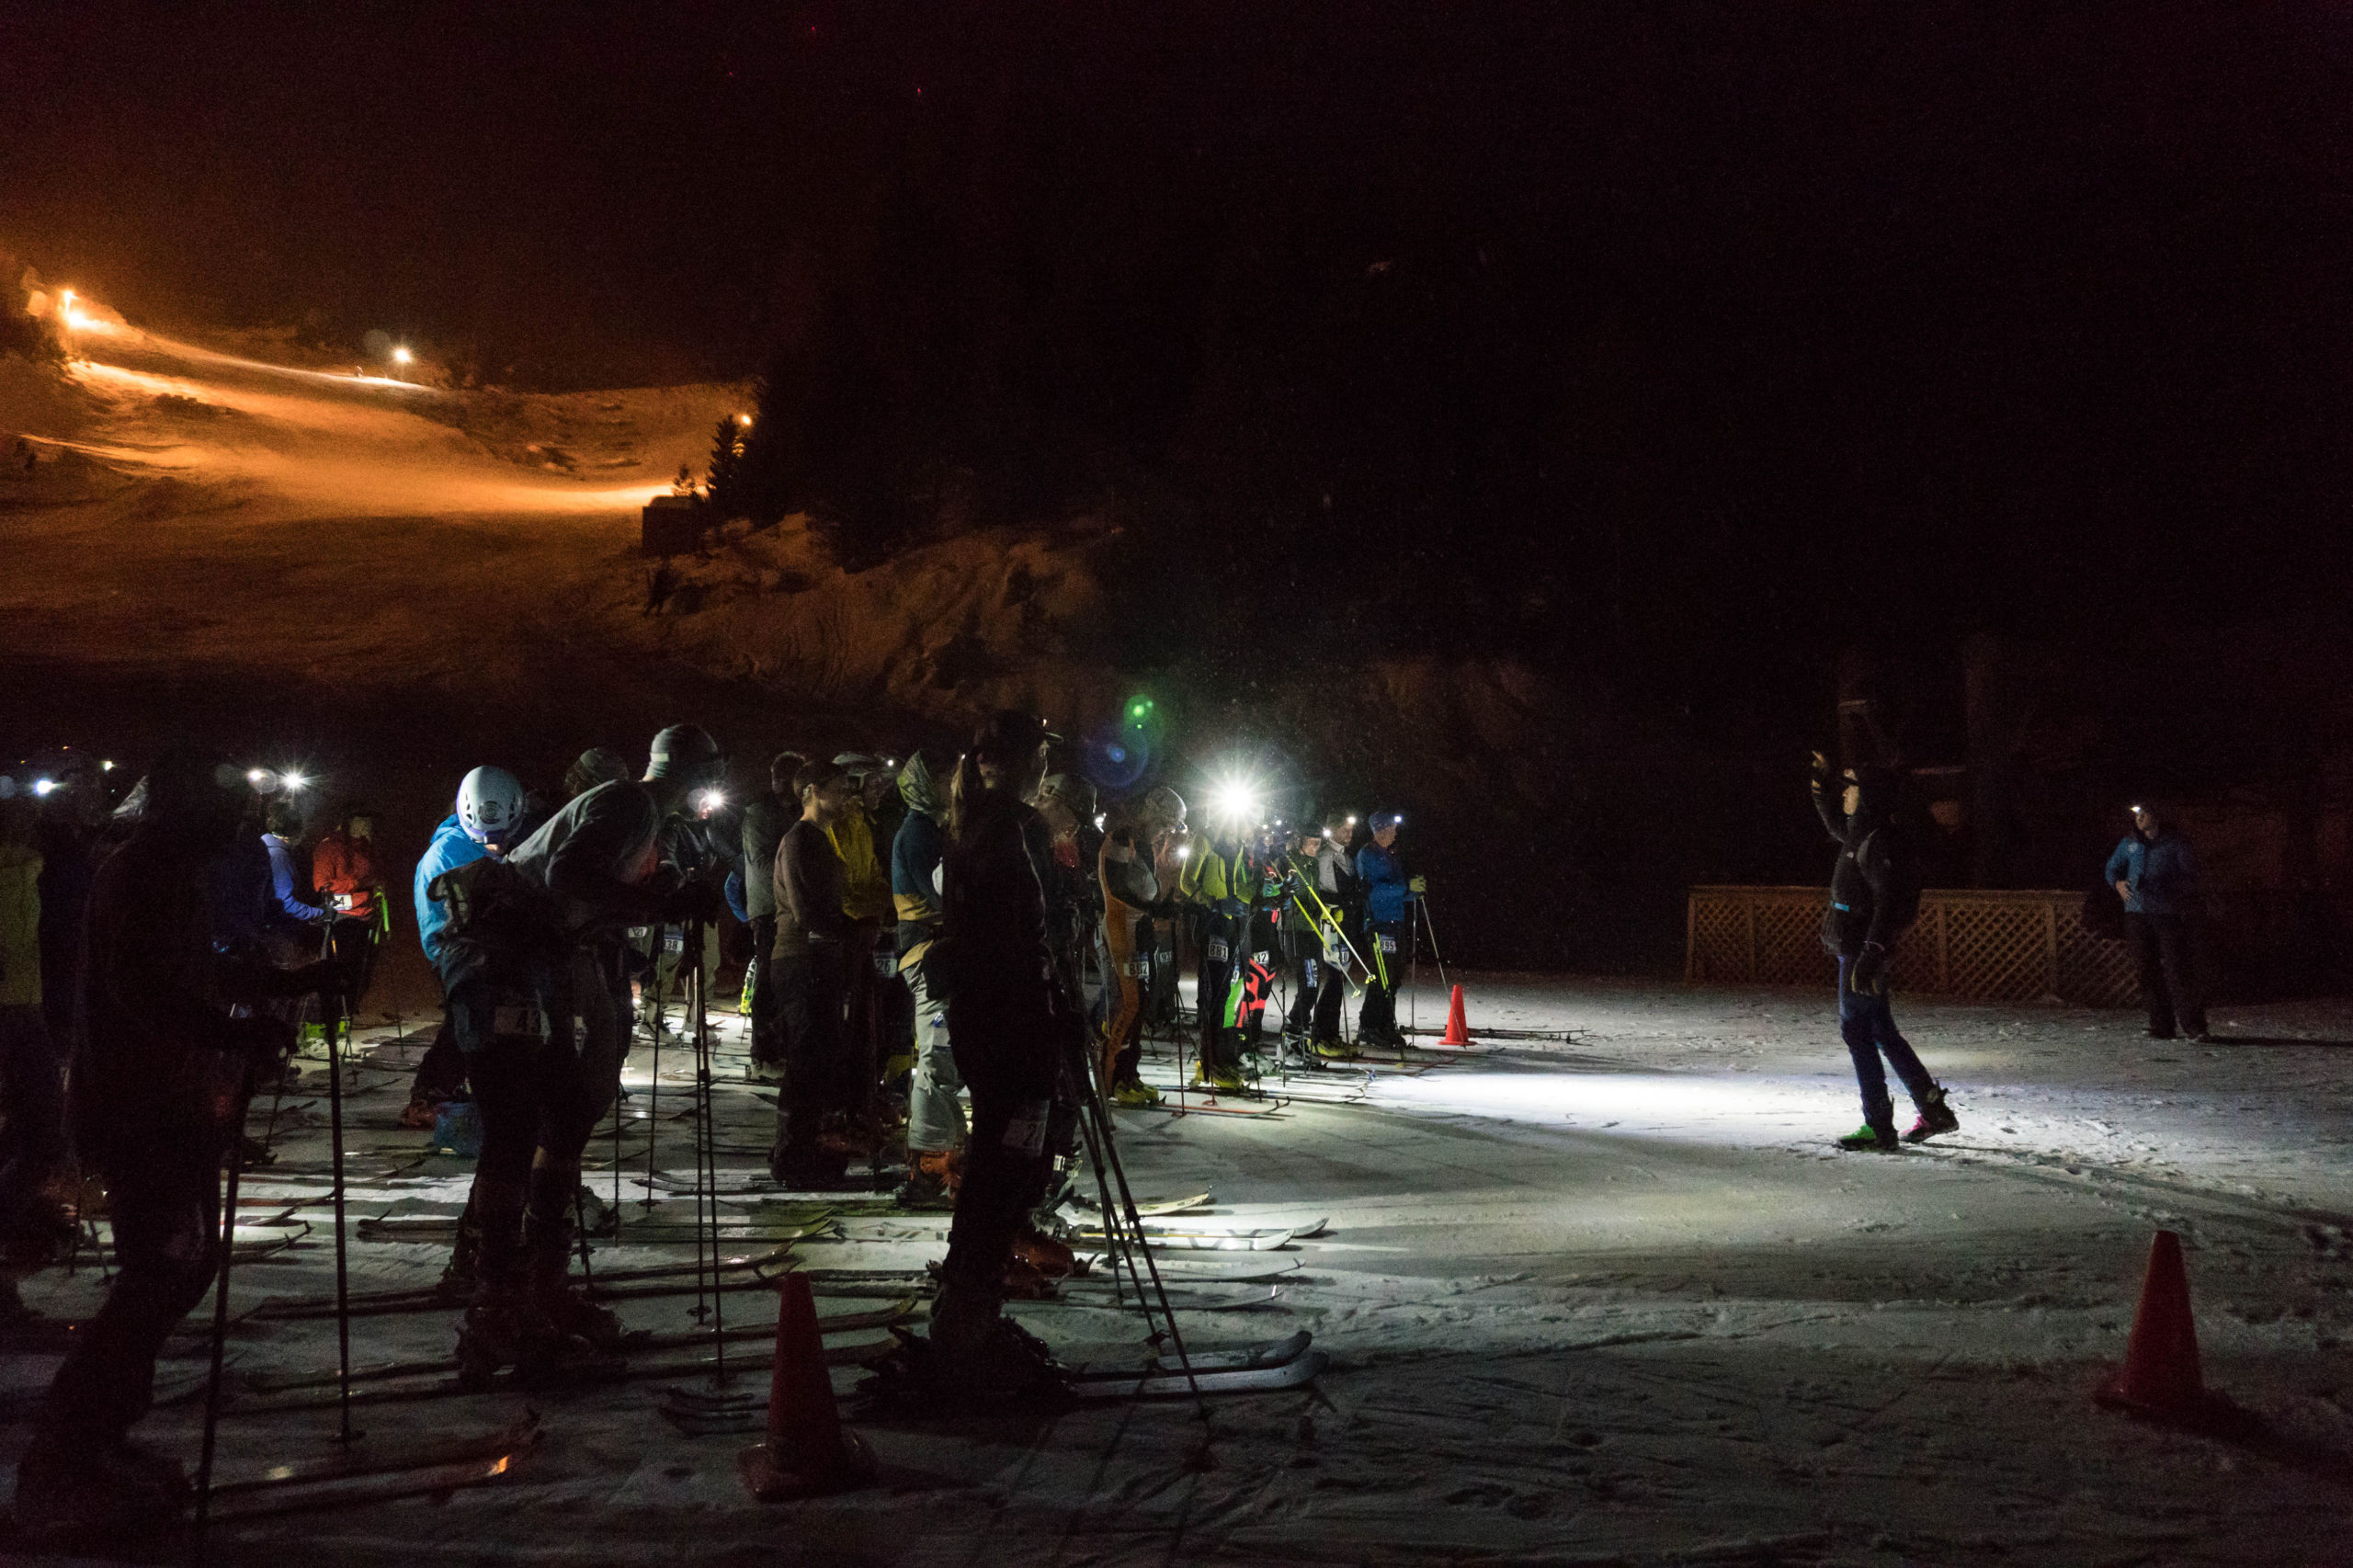 Beginner's Guide to SkiMo Racing missoula rando racers, CREDIT bobby jahrig (2)